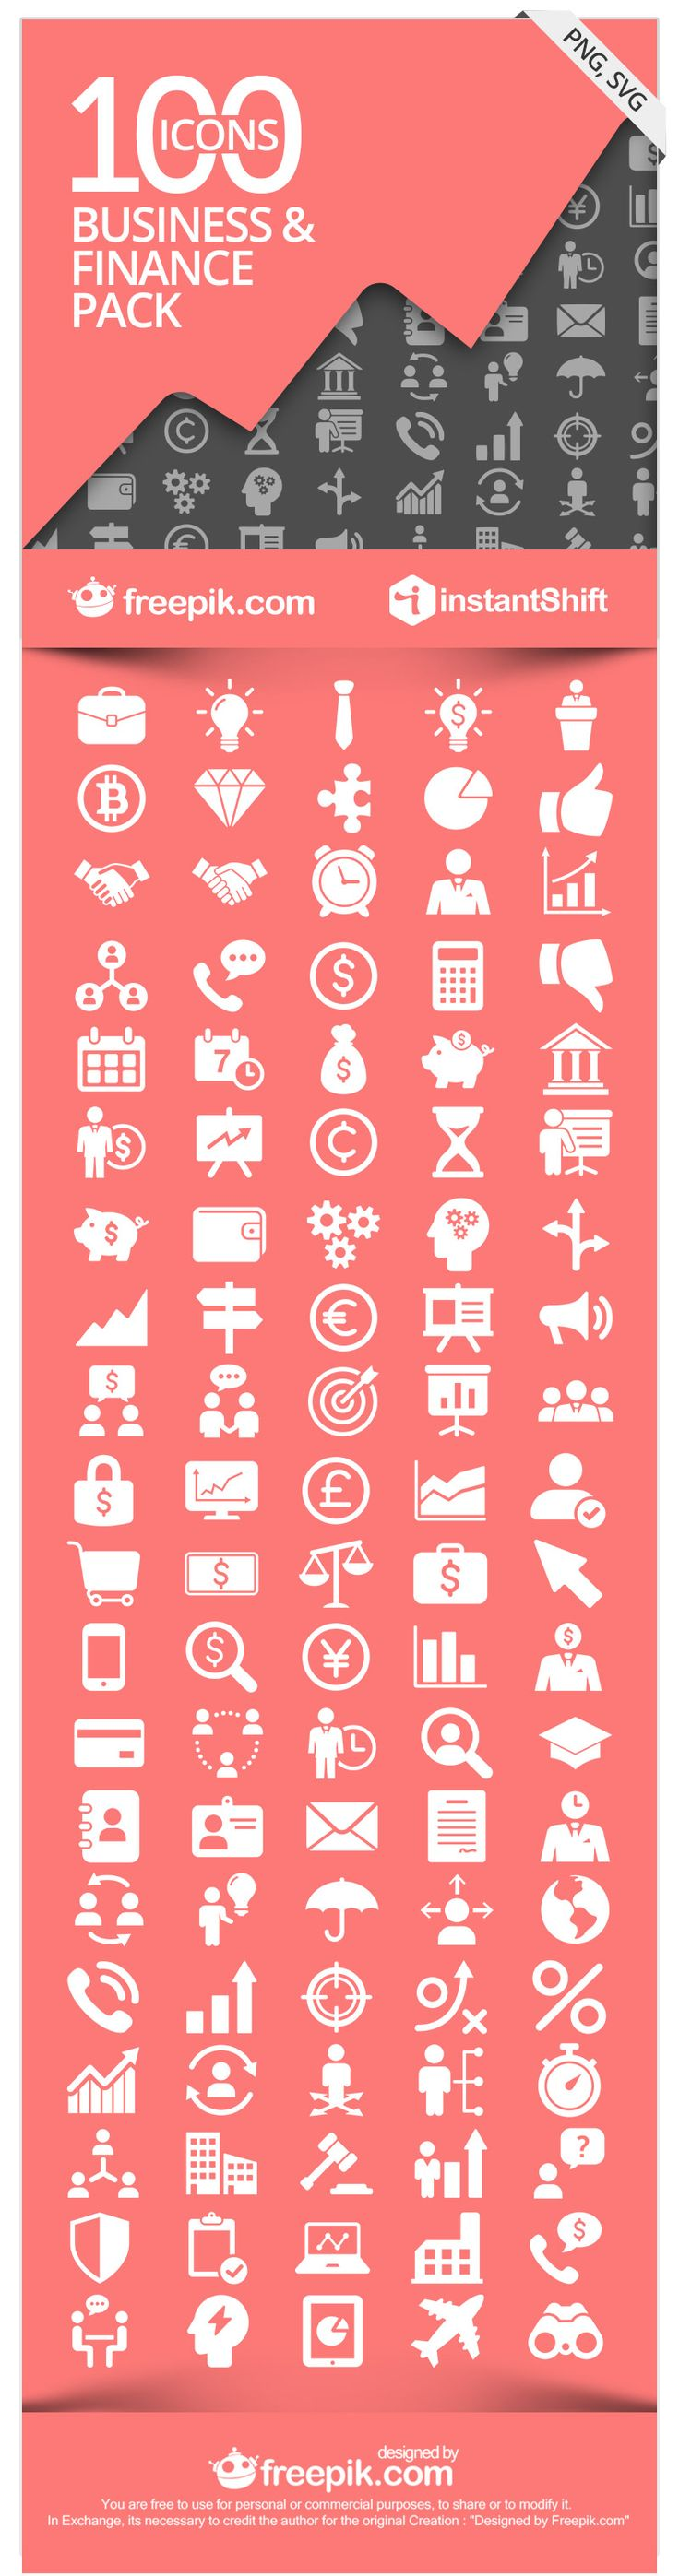 FinBiz - The Free Business & Finance Icon Set